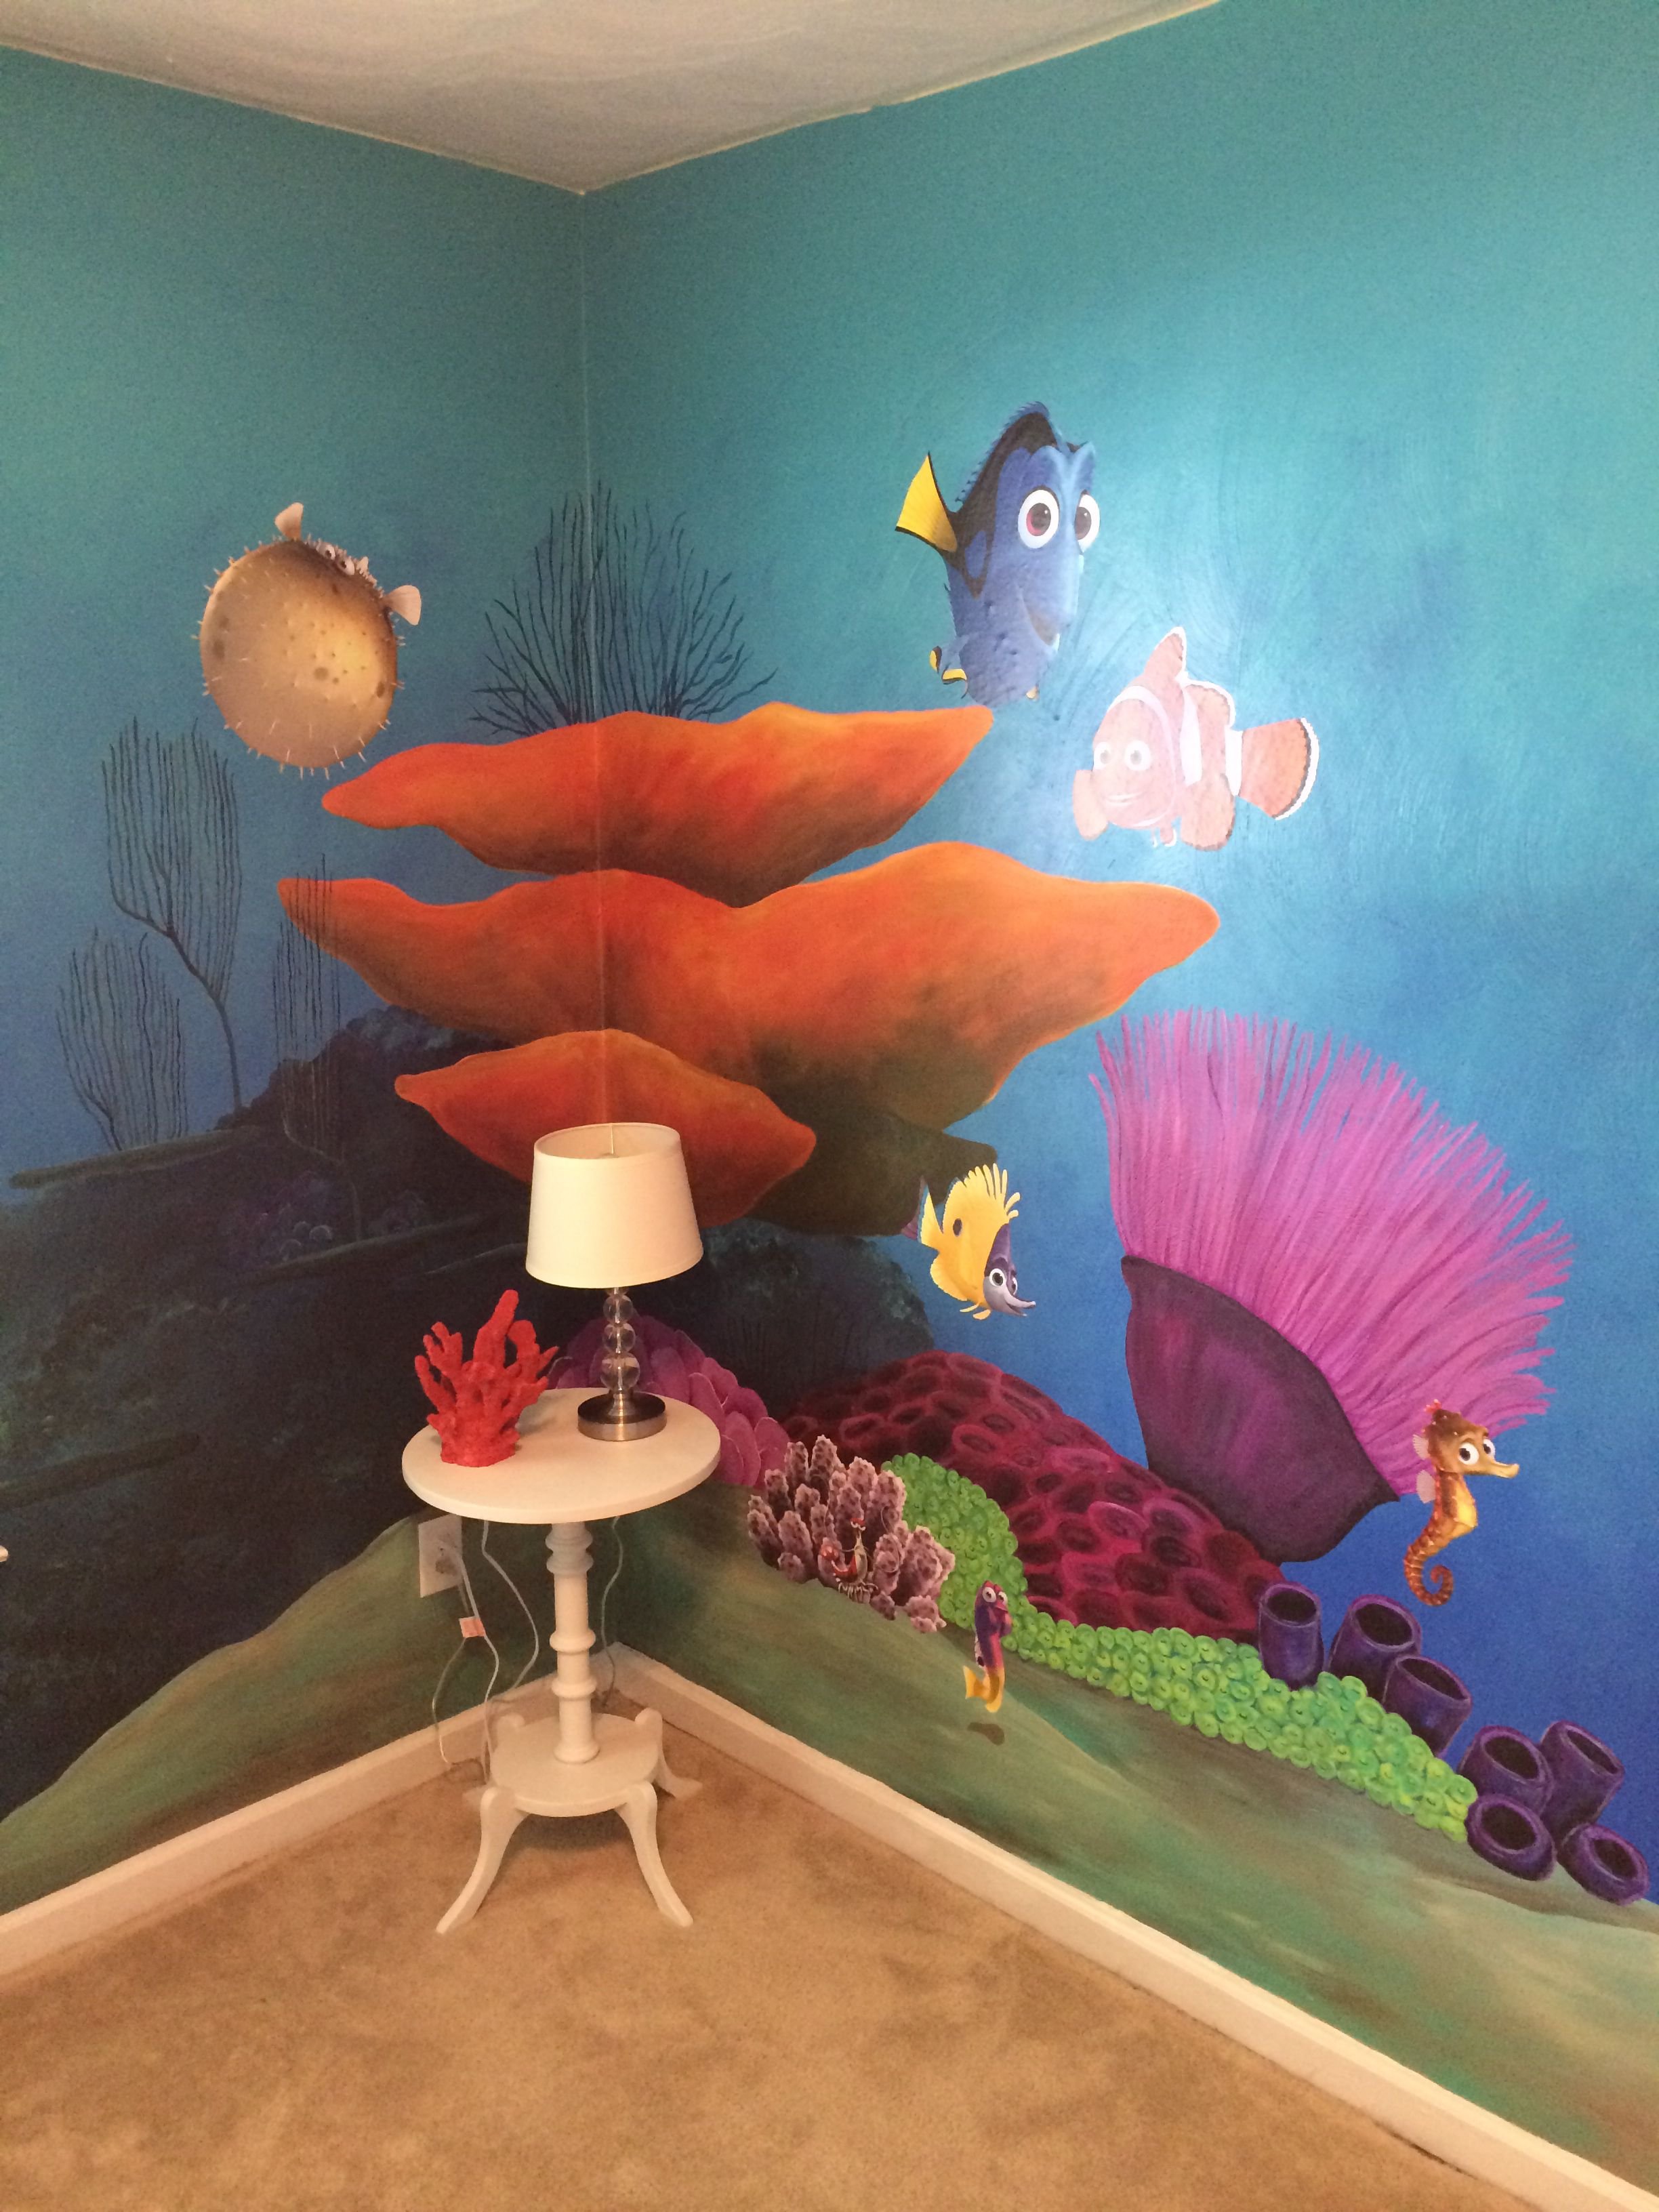 Finding Nemo Baby Bedroom Set: Finding Nemo Nursery. My Mom, Awesome Friend And I Hand